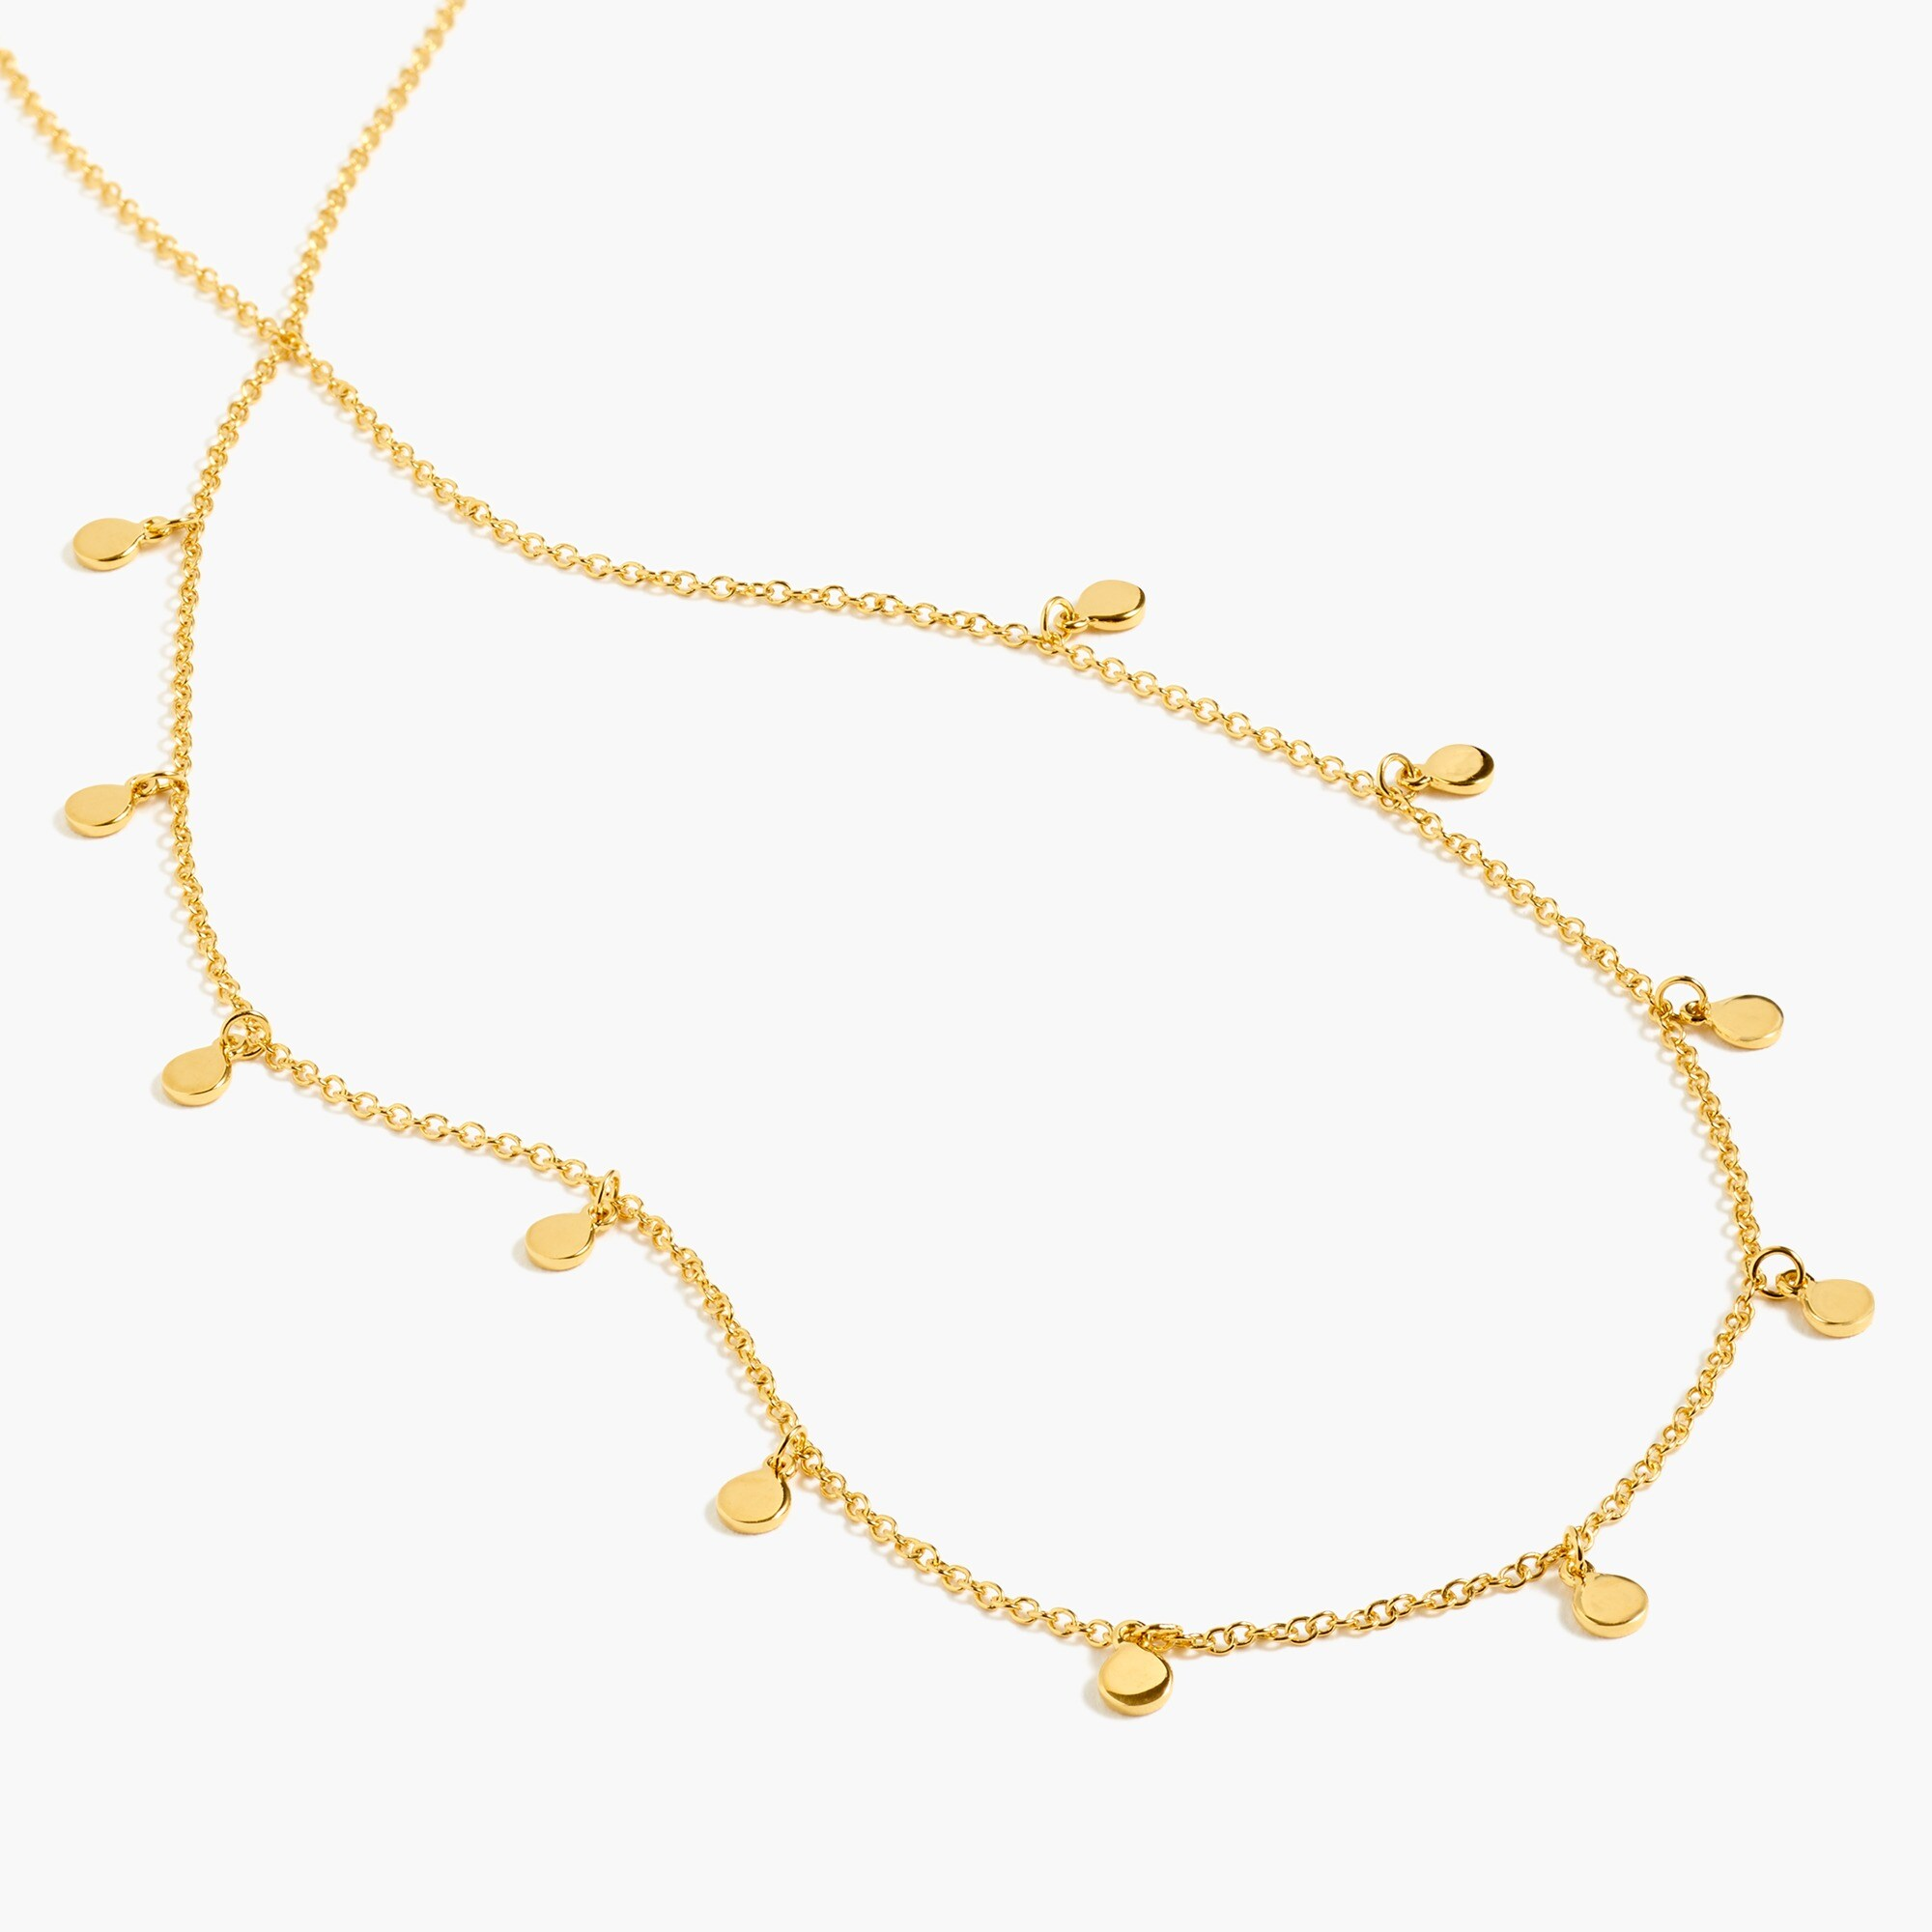 womens Demi-fine 14k gold-plated long necklace with dot charms